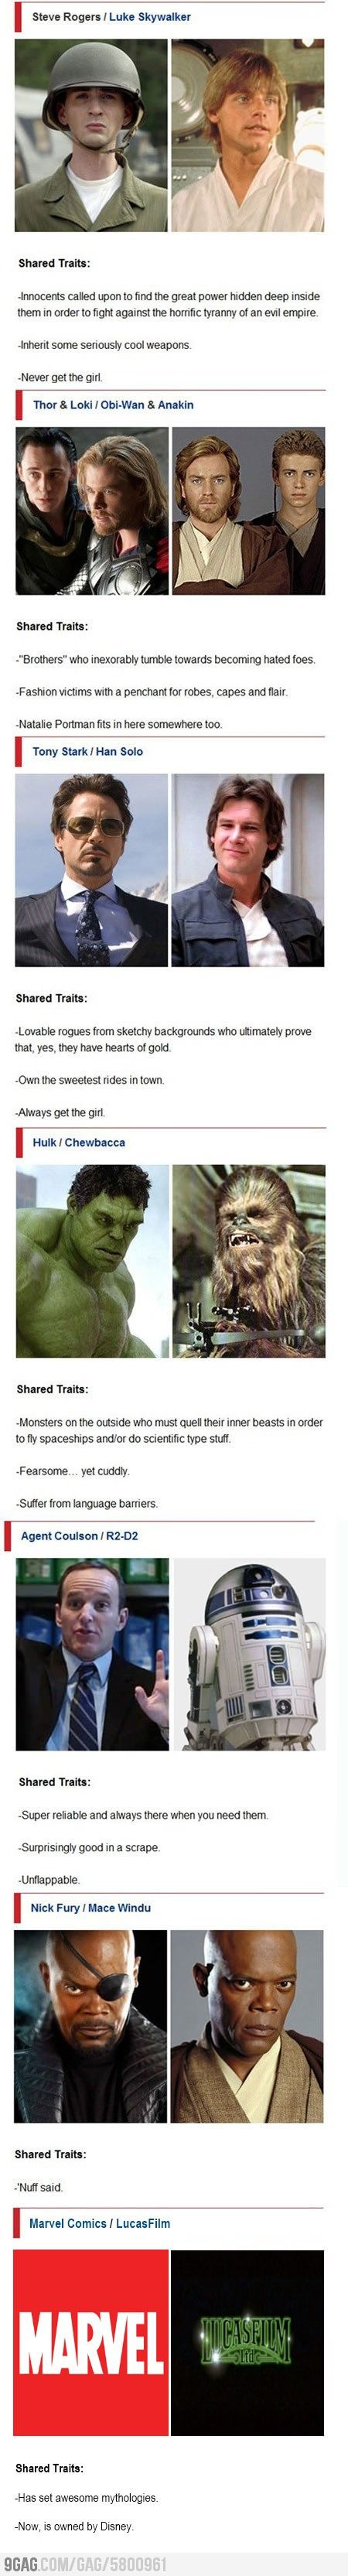 Star Wars vs The Avengers Get to the end, you'll know why its here. This is literally the best thing ever!!!!!!!